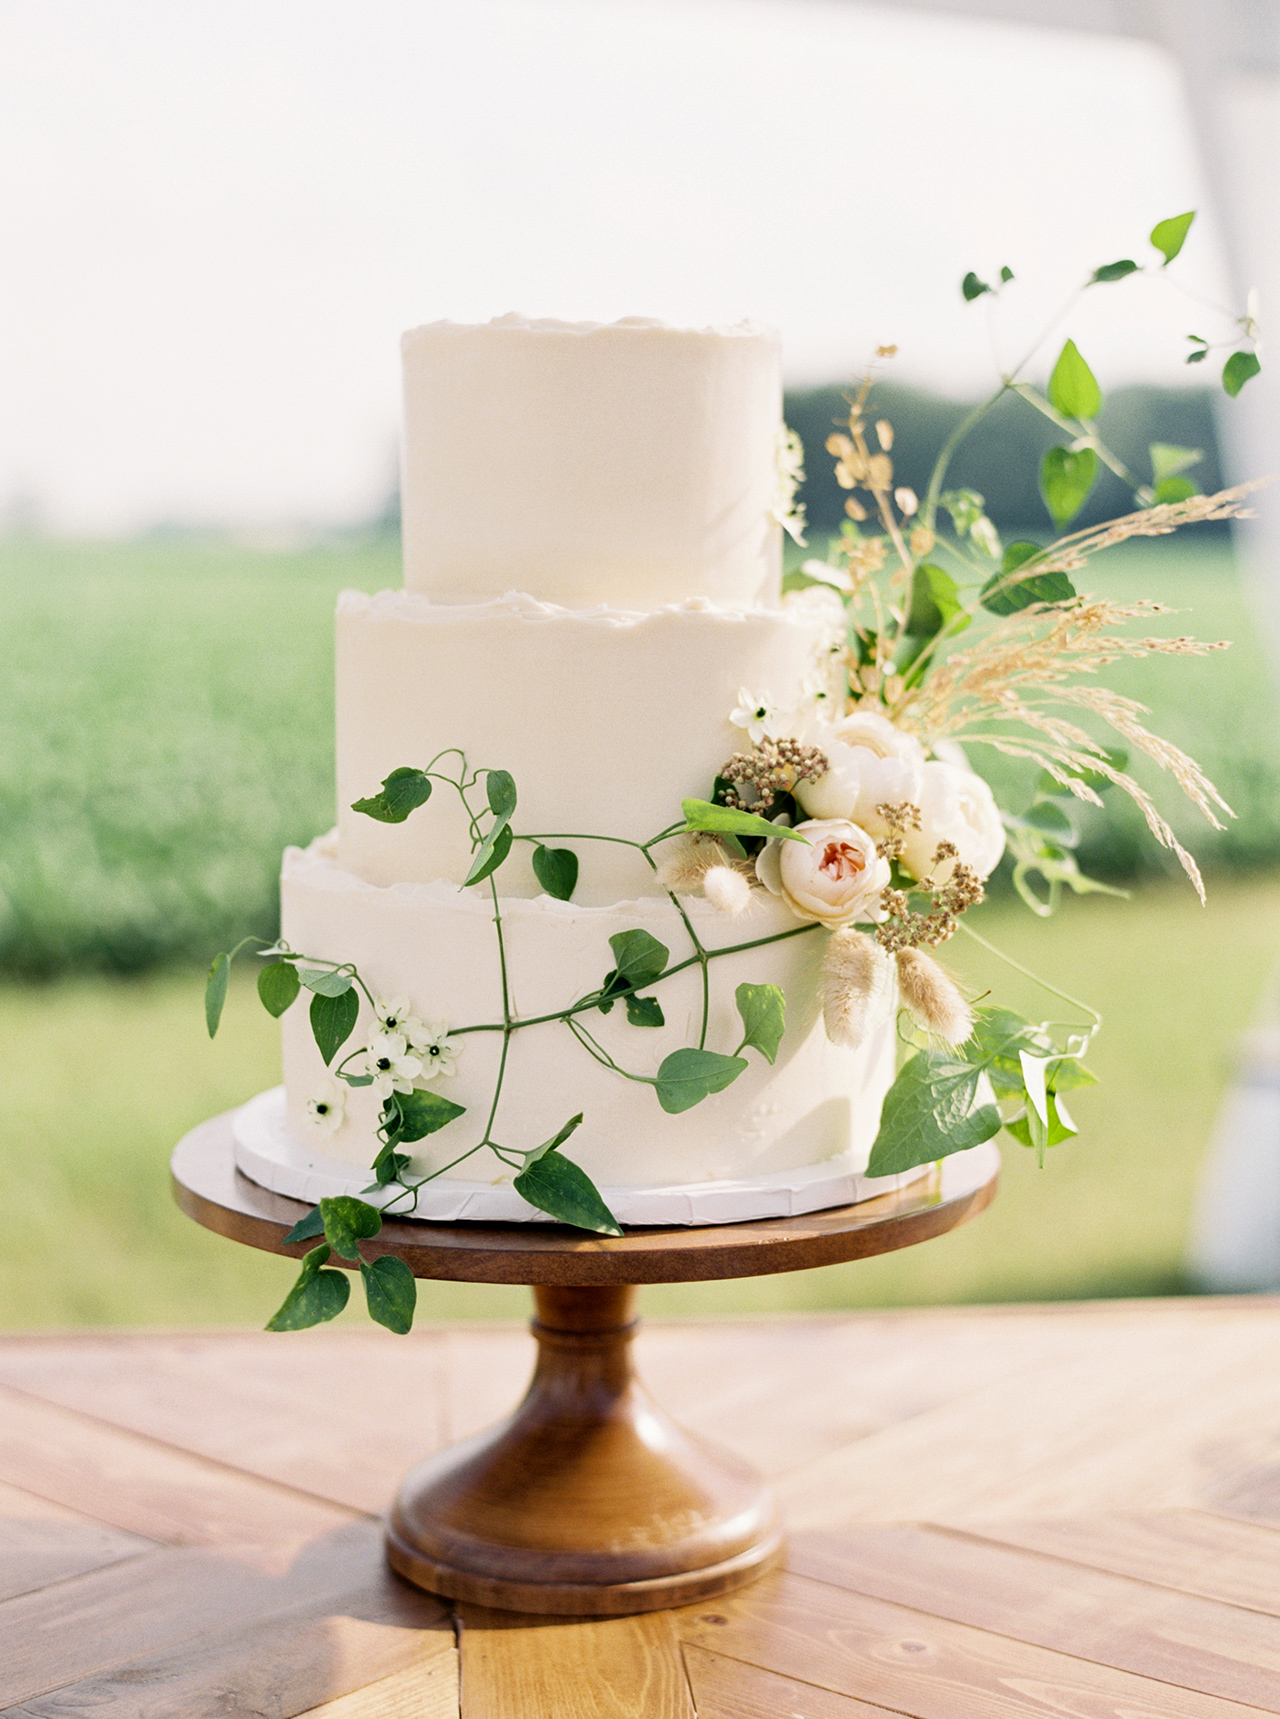 three tier wedding cake displayed on wood table